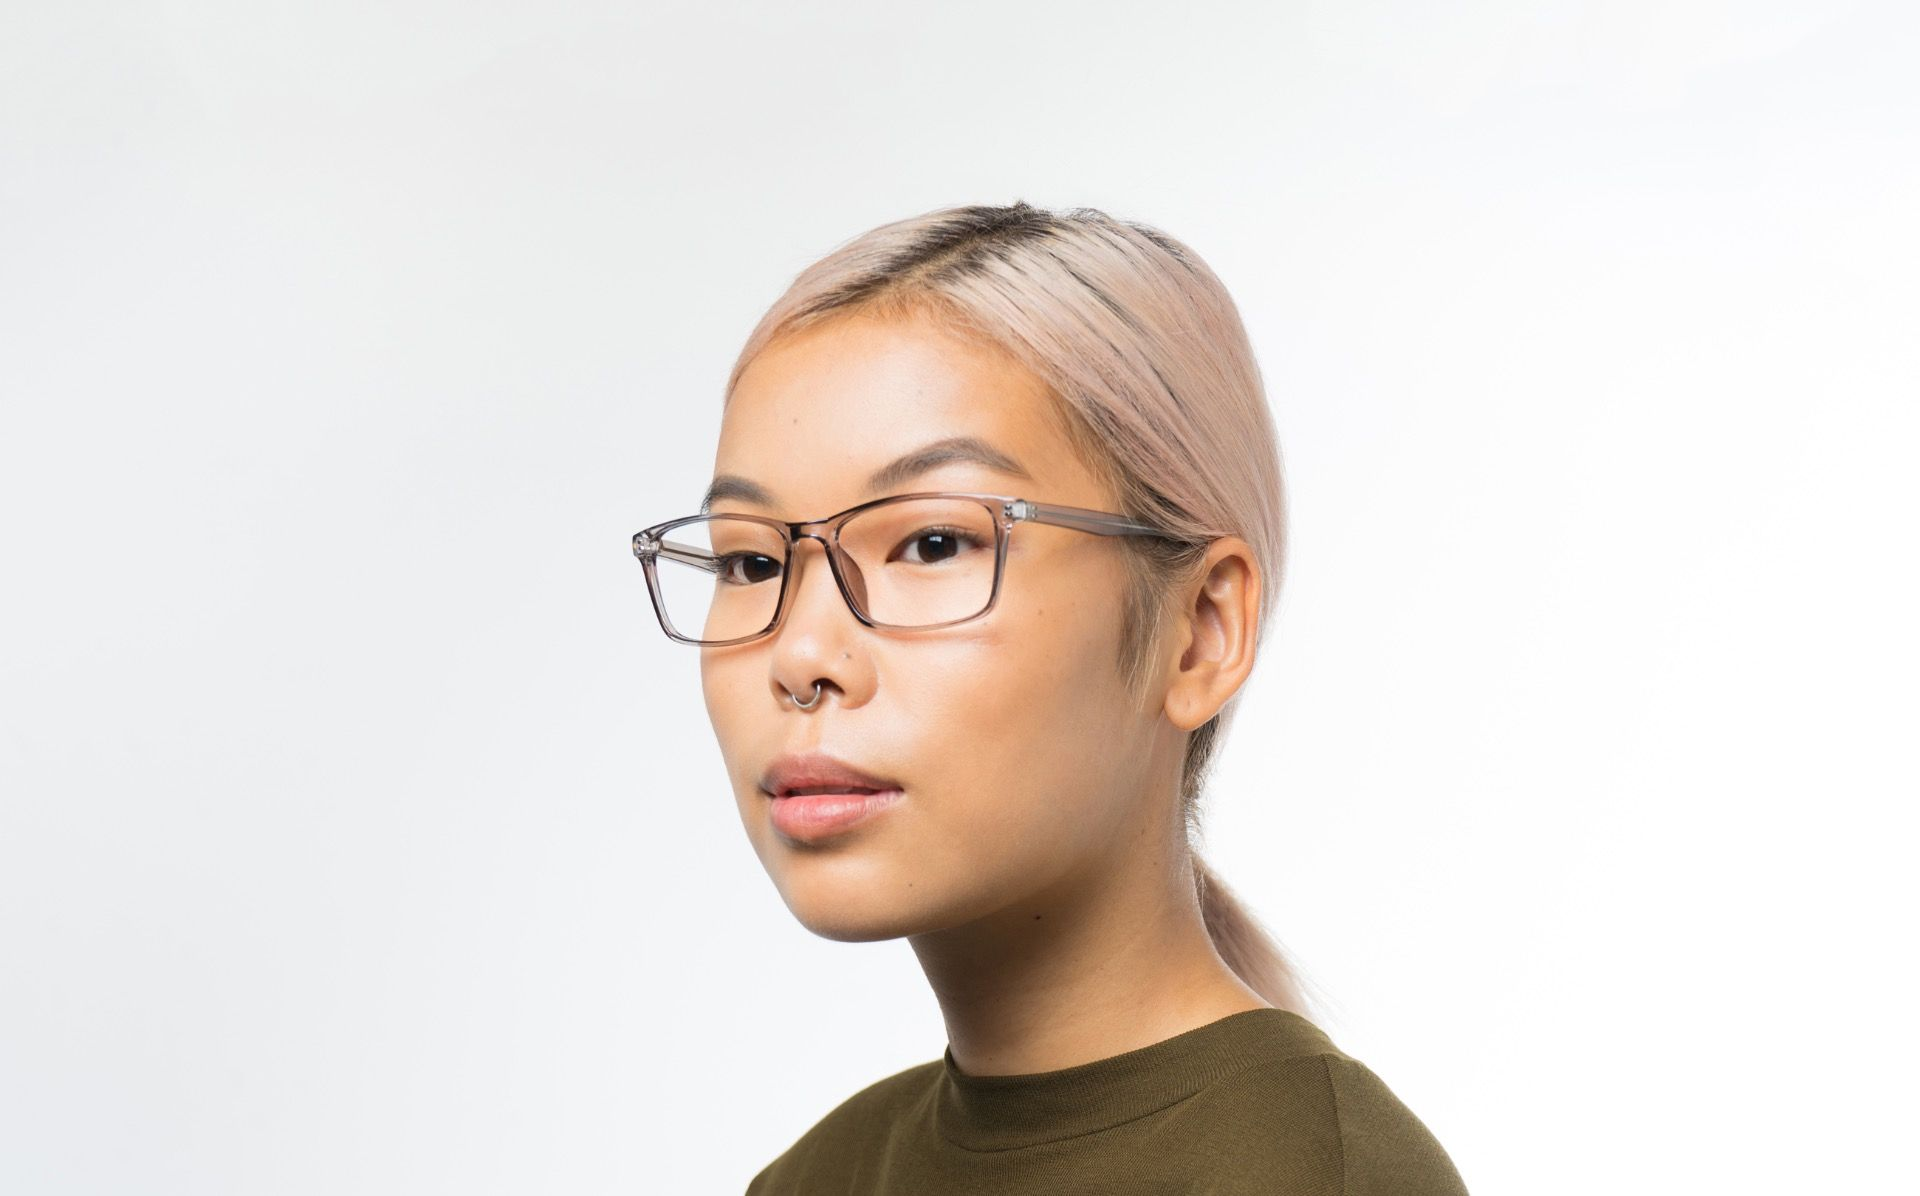 dexter grey polette glasses model view 01 crop